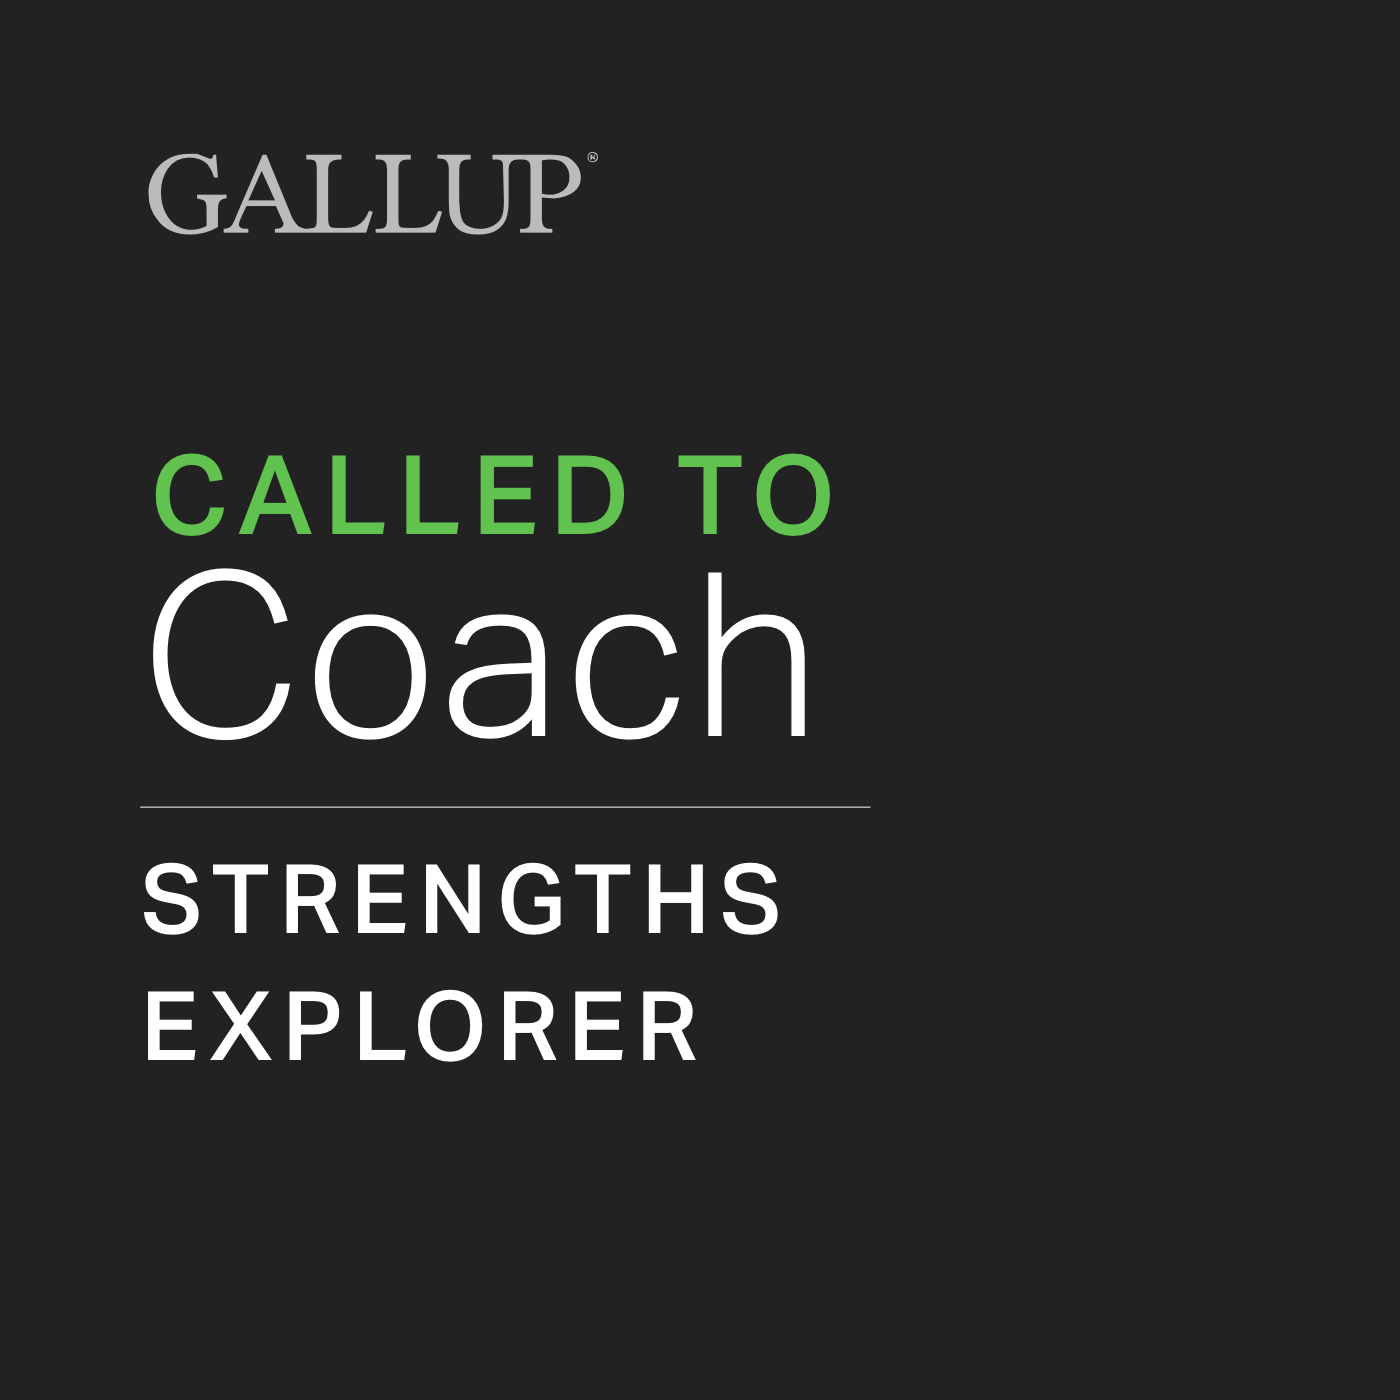 Called to Coach: Strengths Explorer